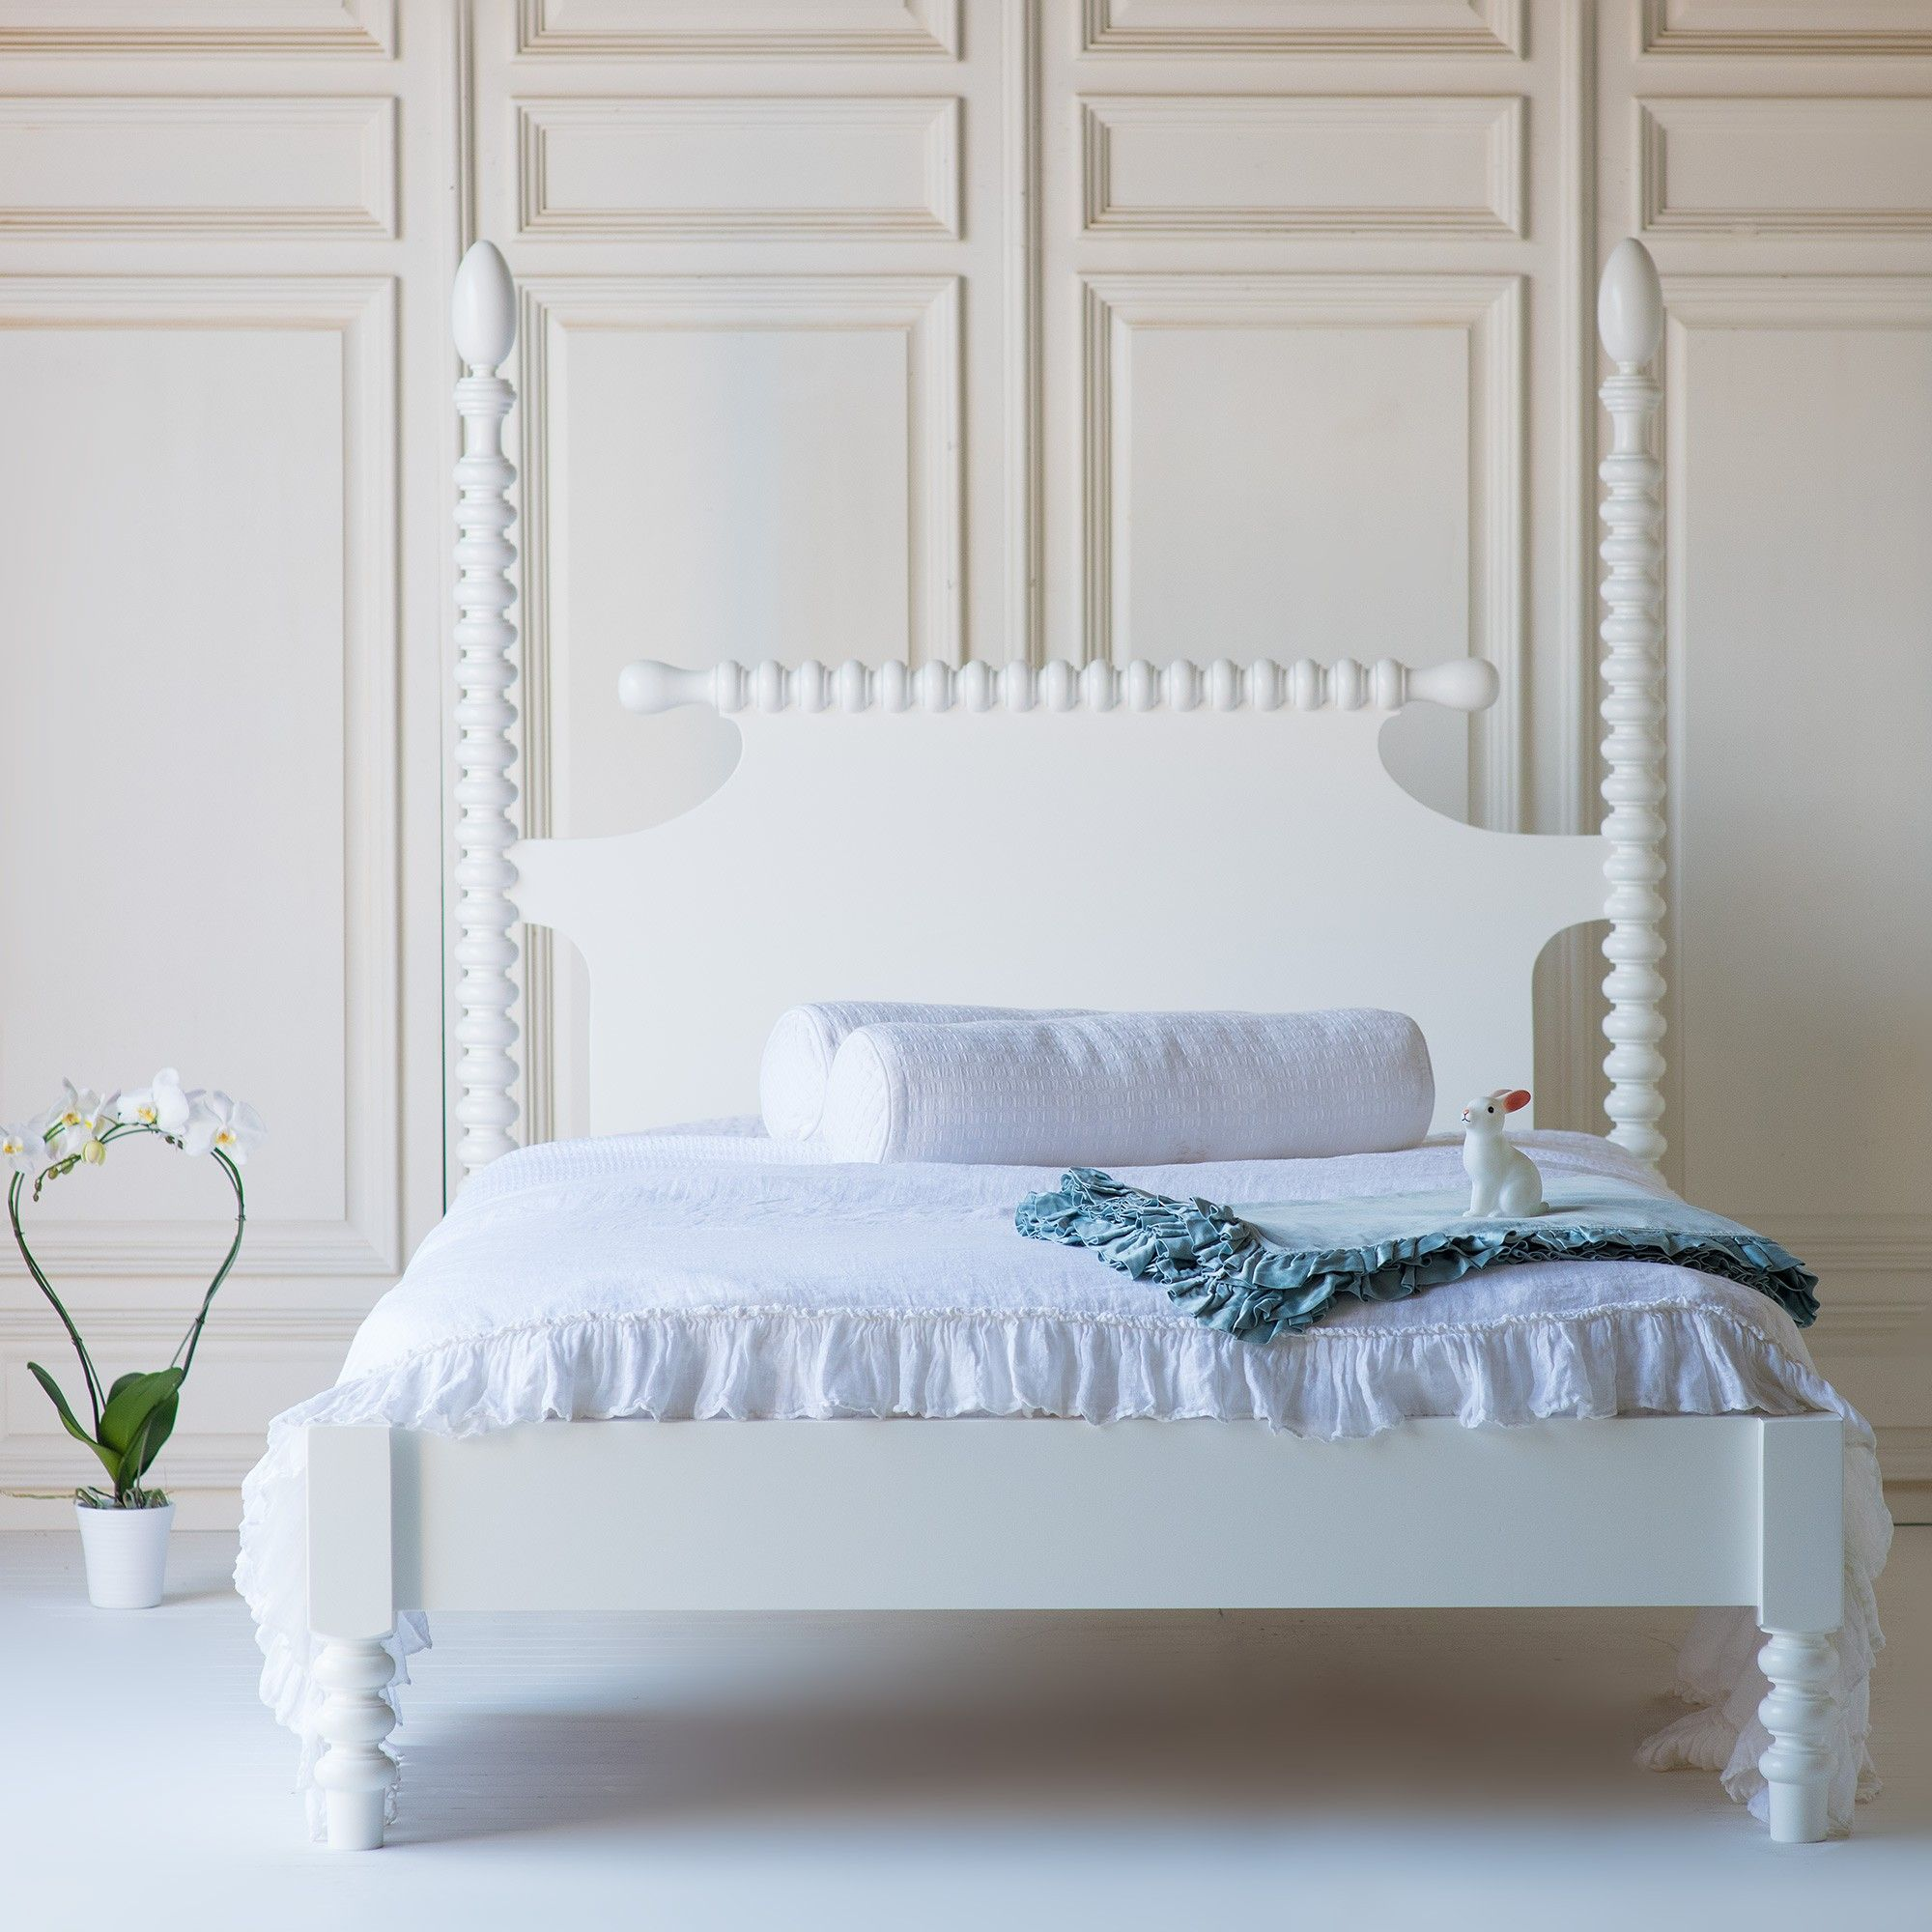 Gwendoline Spindle Bed Low Footboard By The Beautiful Bed Company Bed Linens Luxury Spindle Bed Bed Linen Design